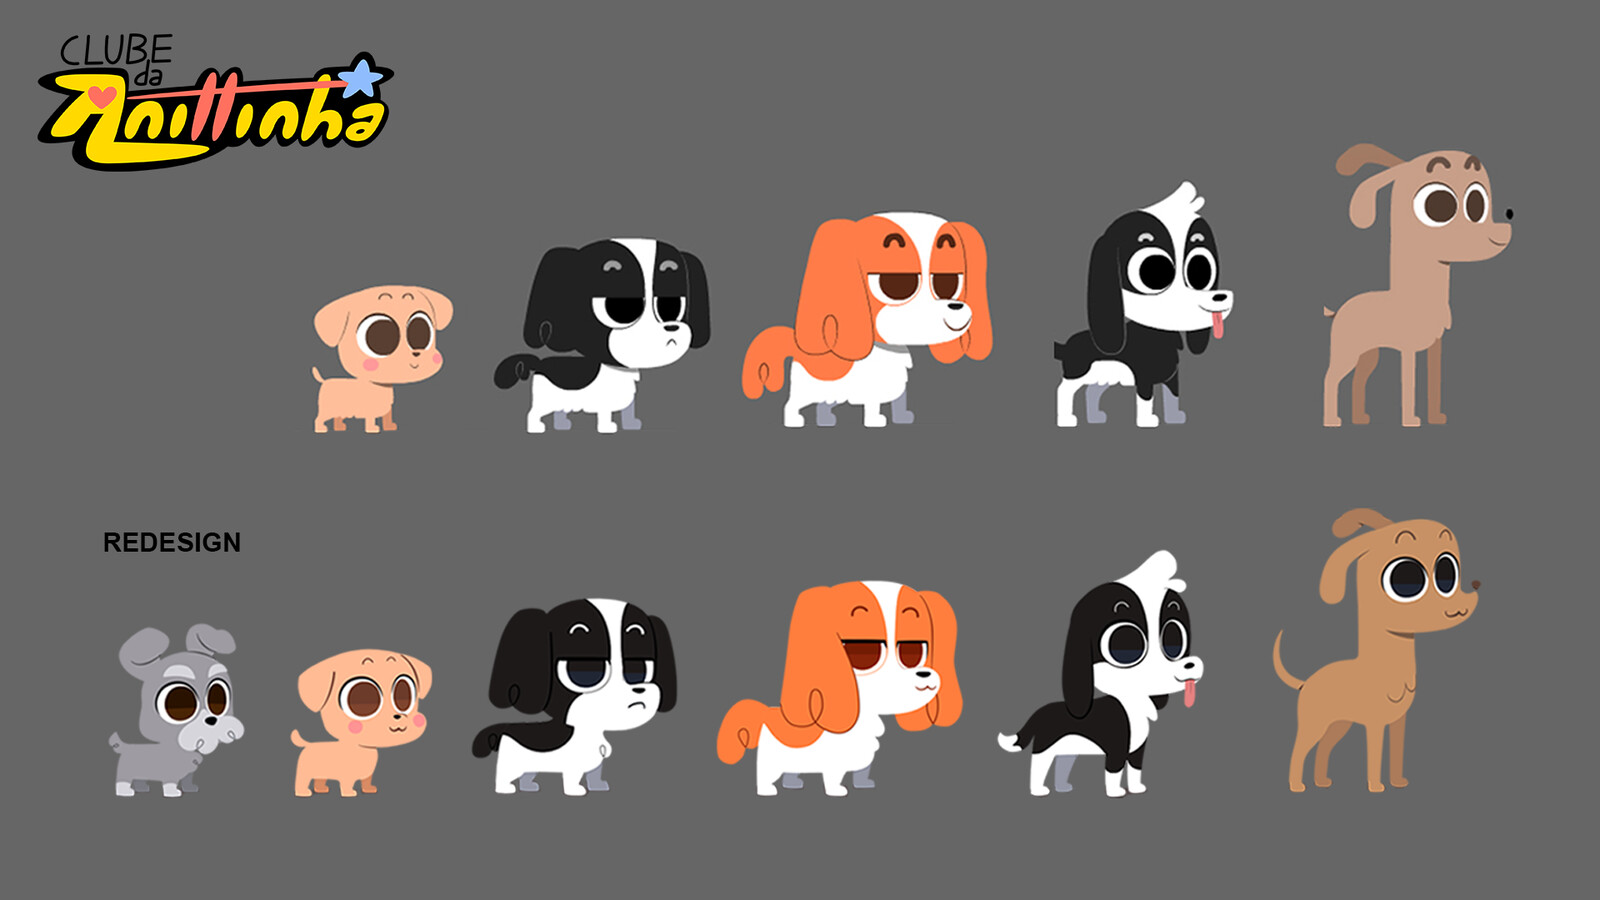 Redesign - Dogs